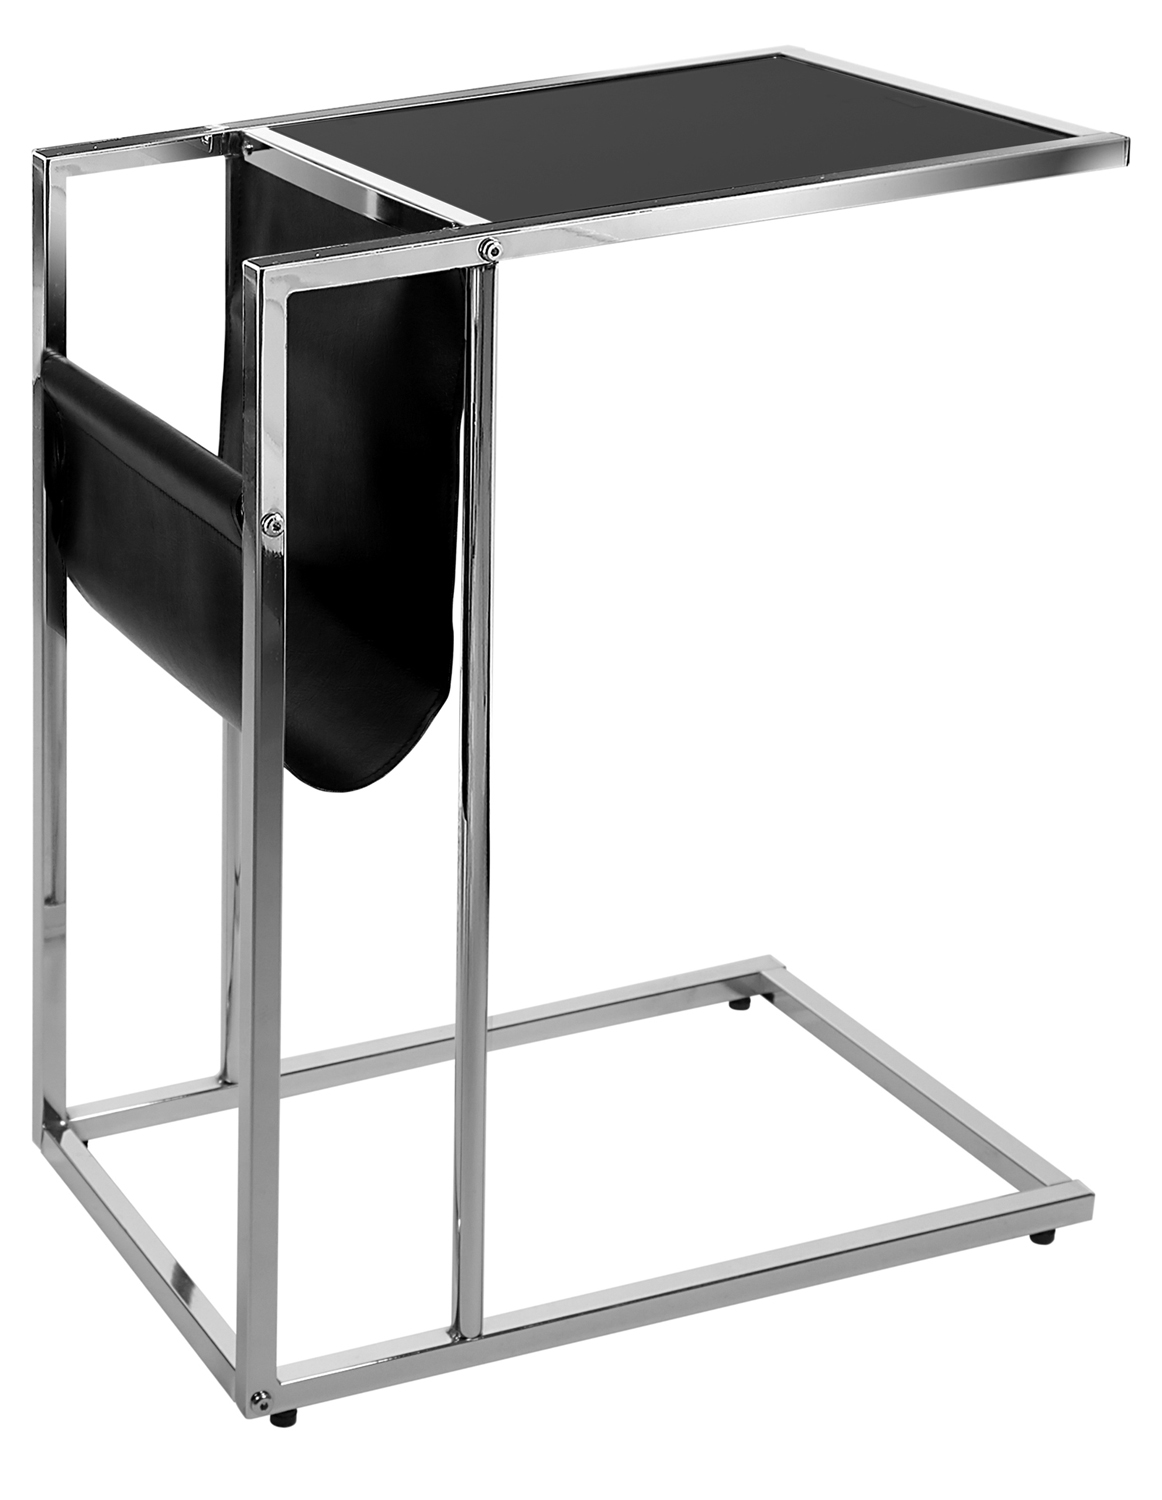 "19"" Accent Table With Magazine Rack, Chrome Metal and Black"